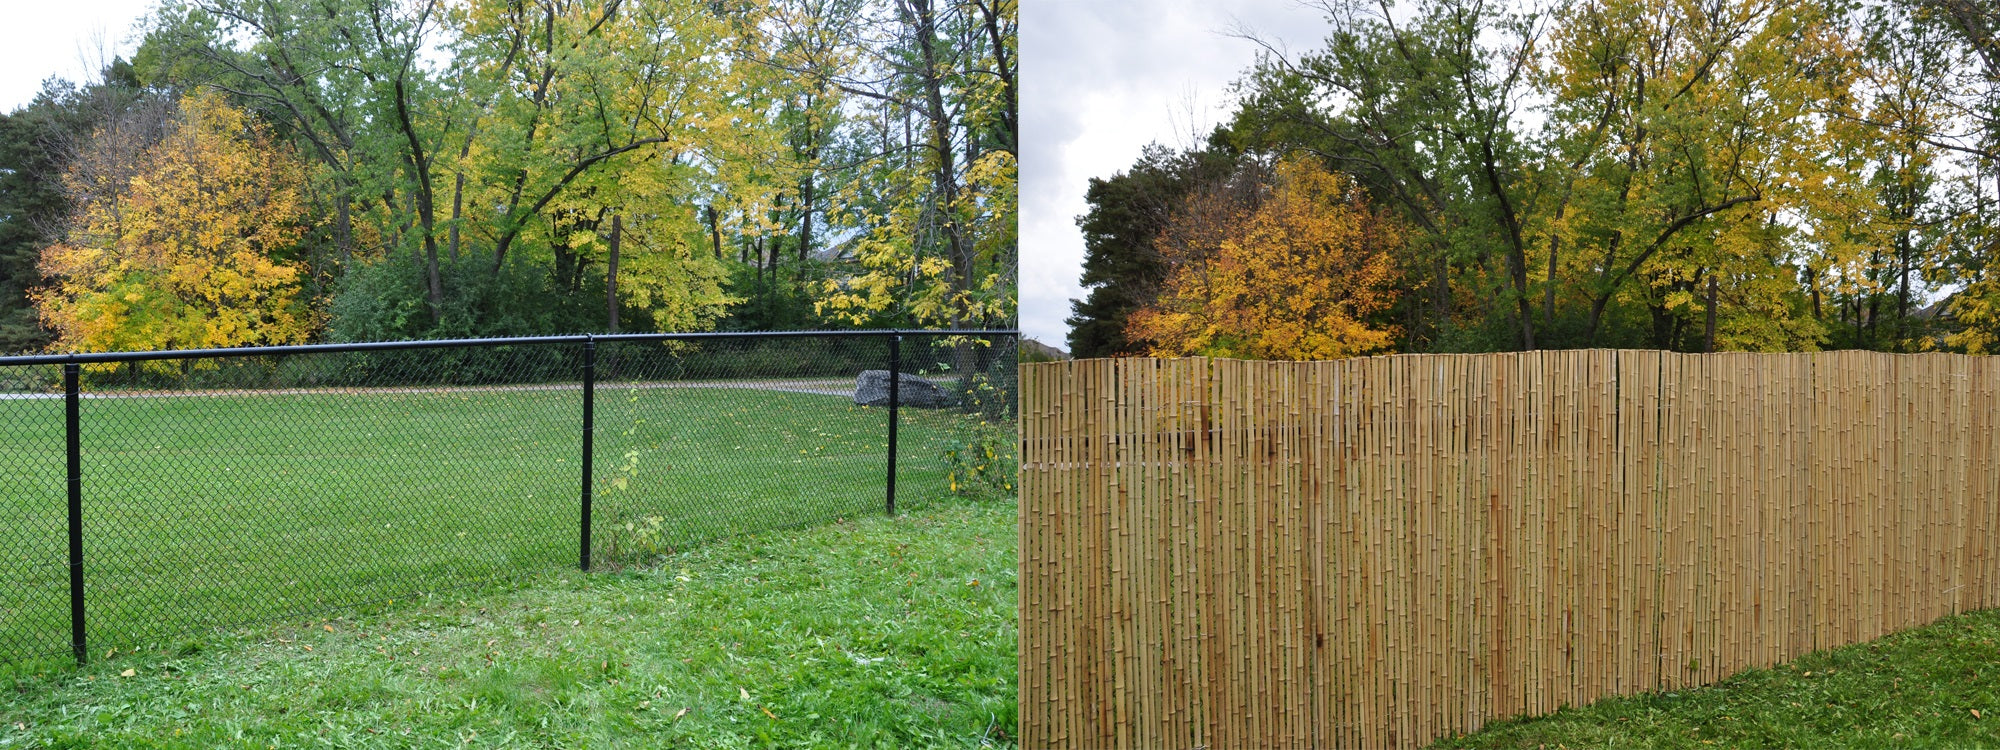 Picture of: Chain Link Fence Privacy Bamboo Toronto Store